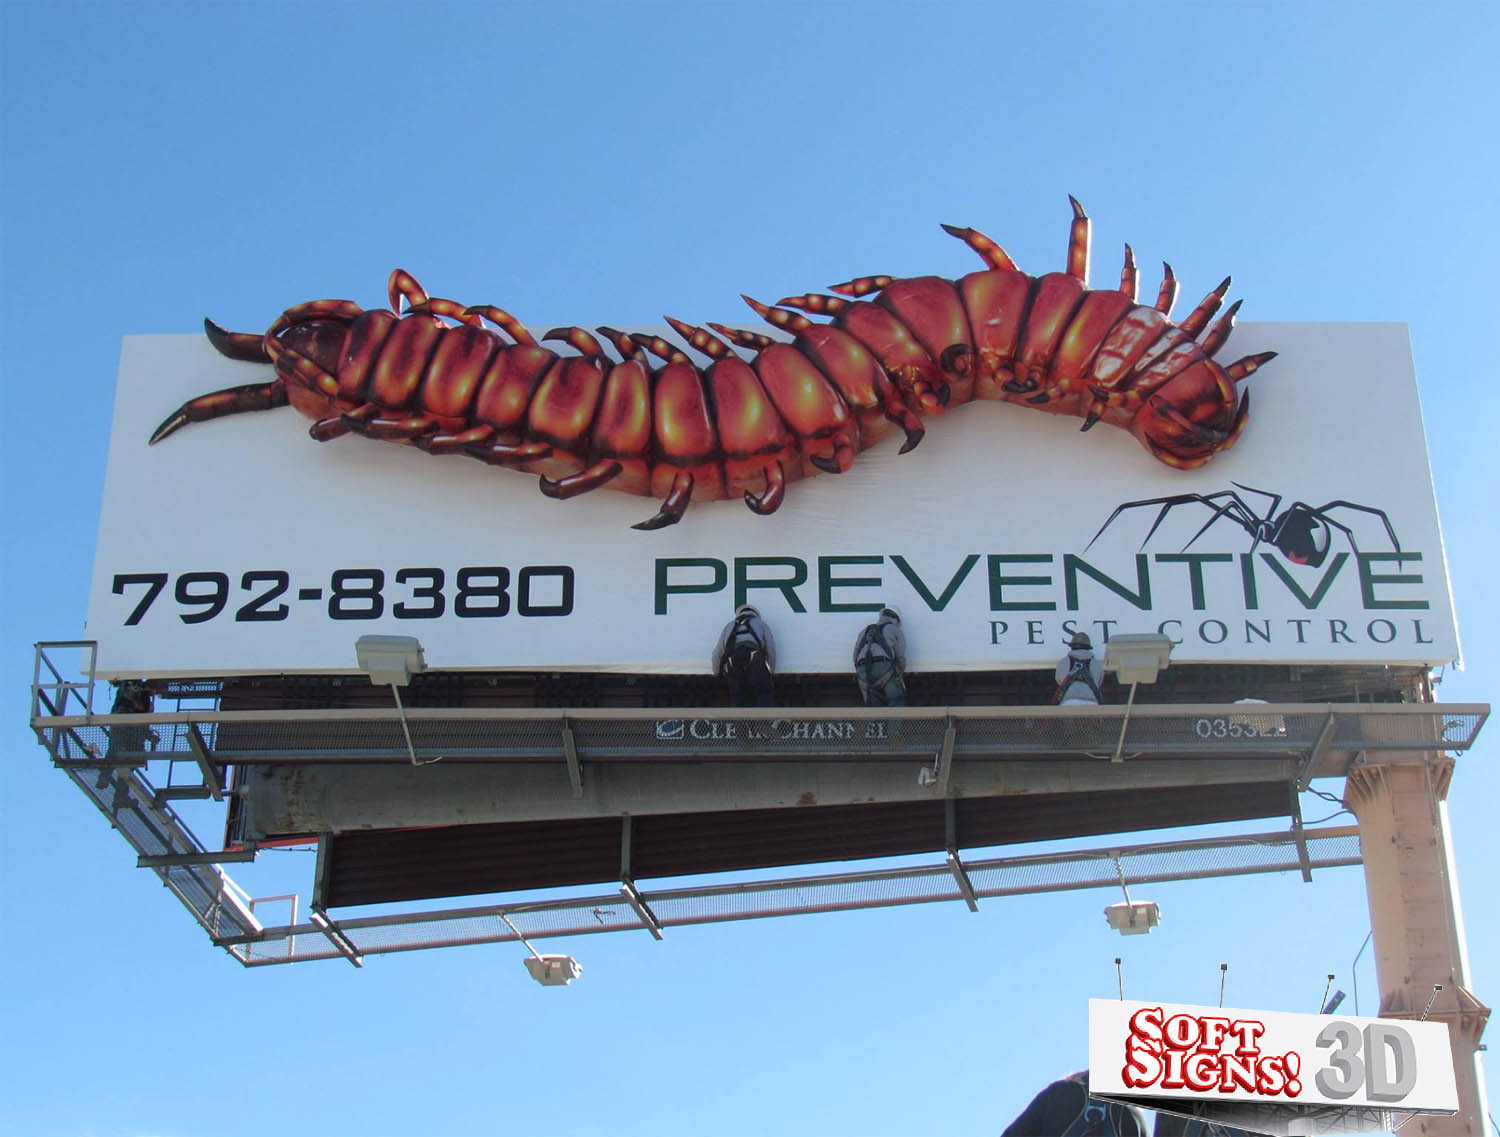 Pest Control Centipede by Soft Signs 3D